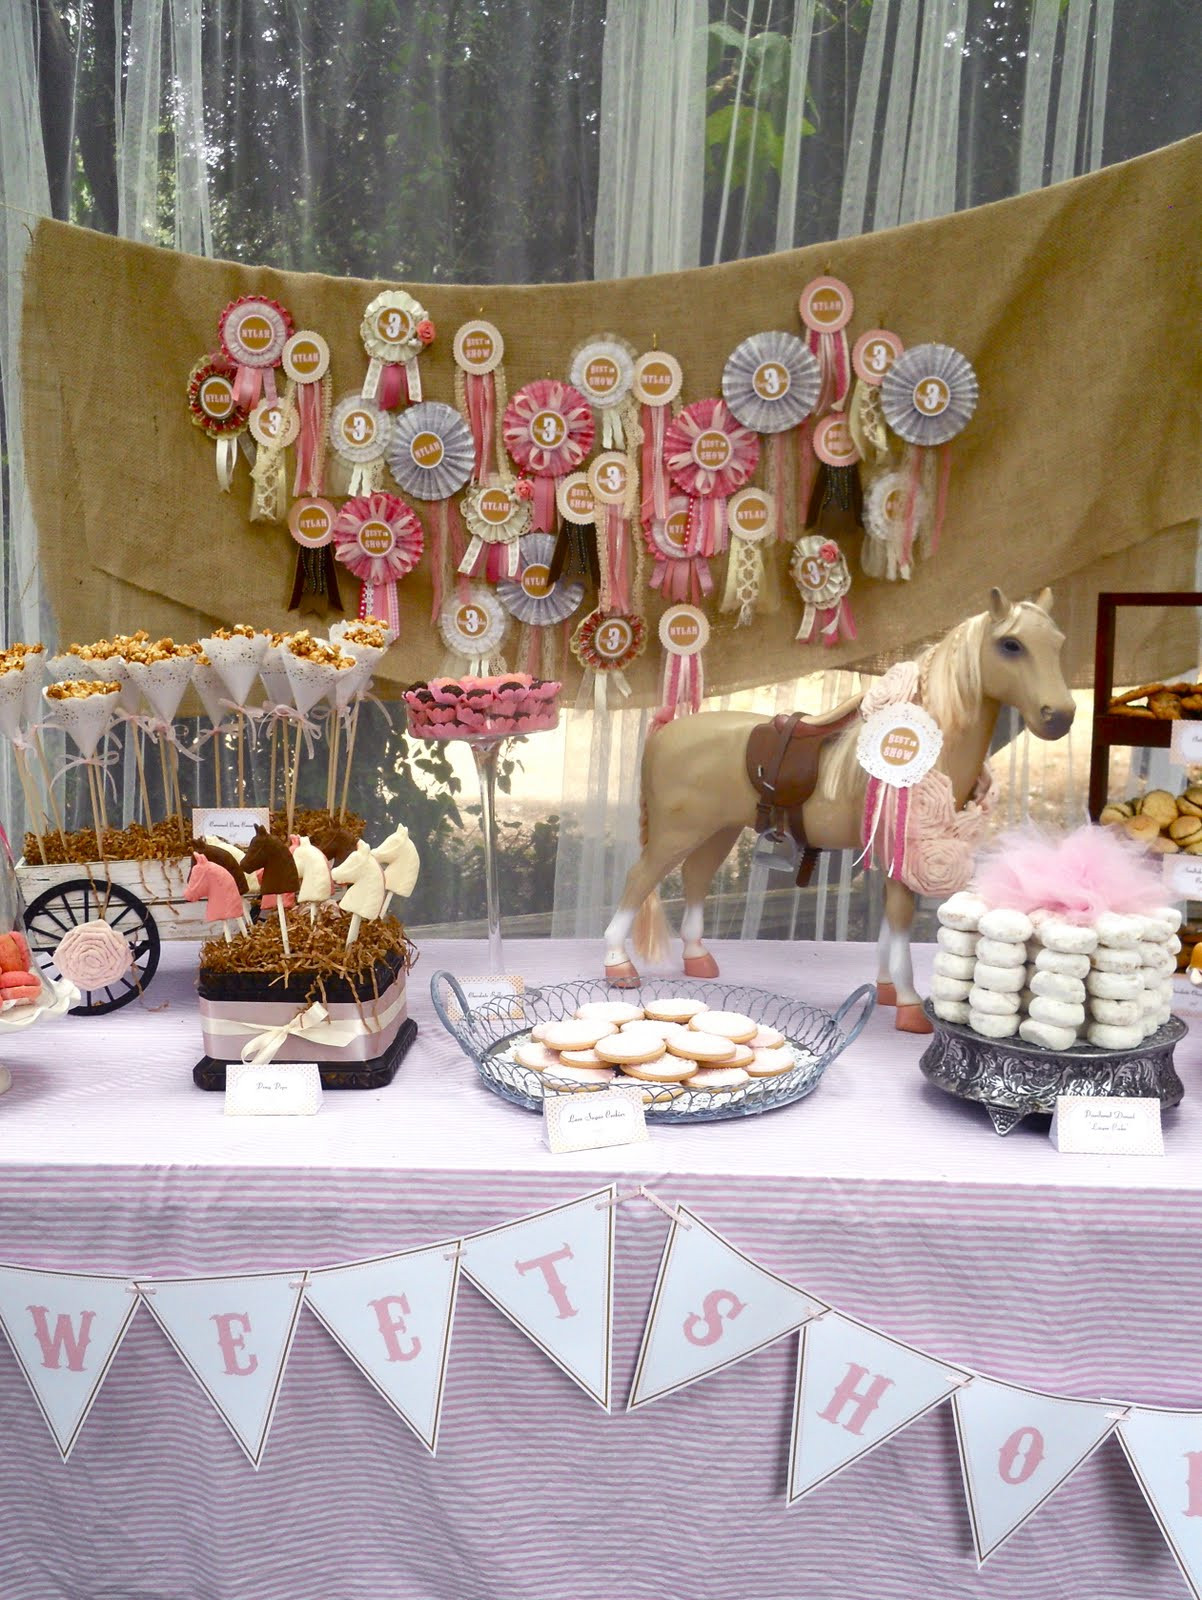 Best ideas about Horse Decorations For Birthday Party . Save or Pin Oh Sugar Events Vintage Pony Party Now.